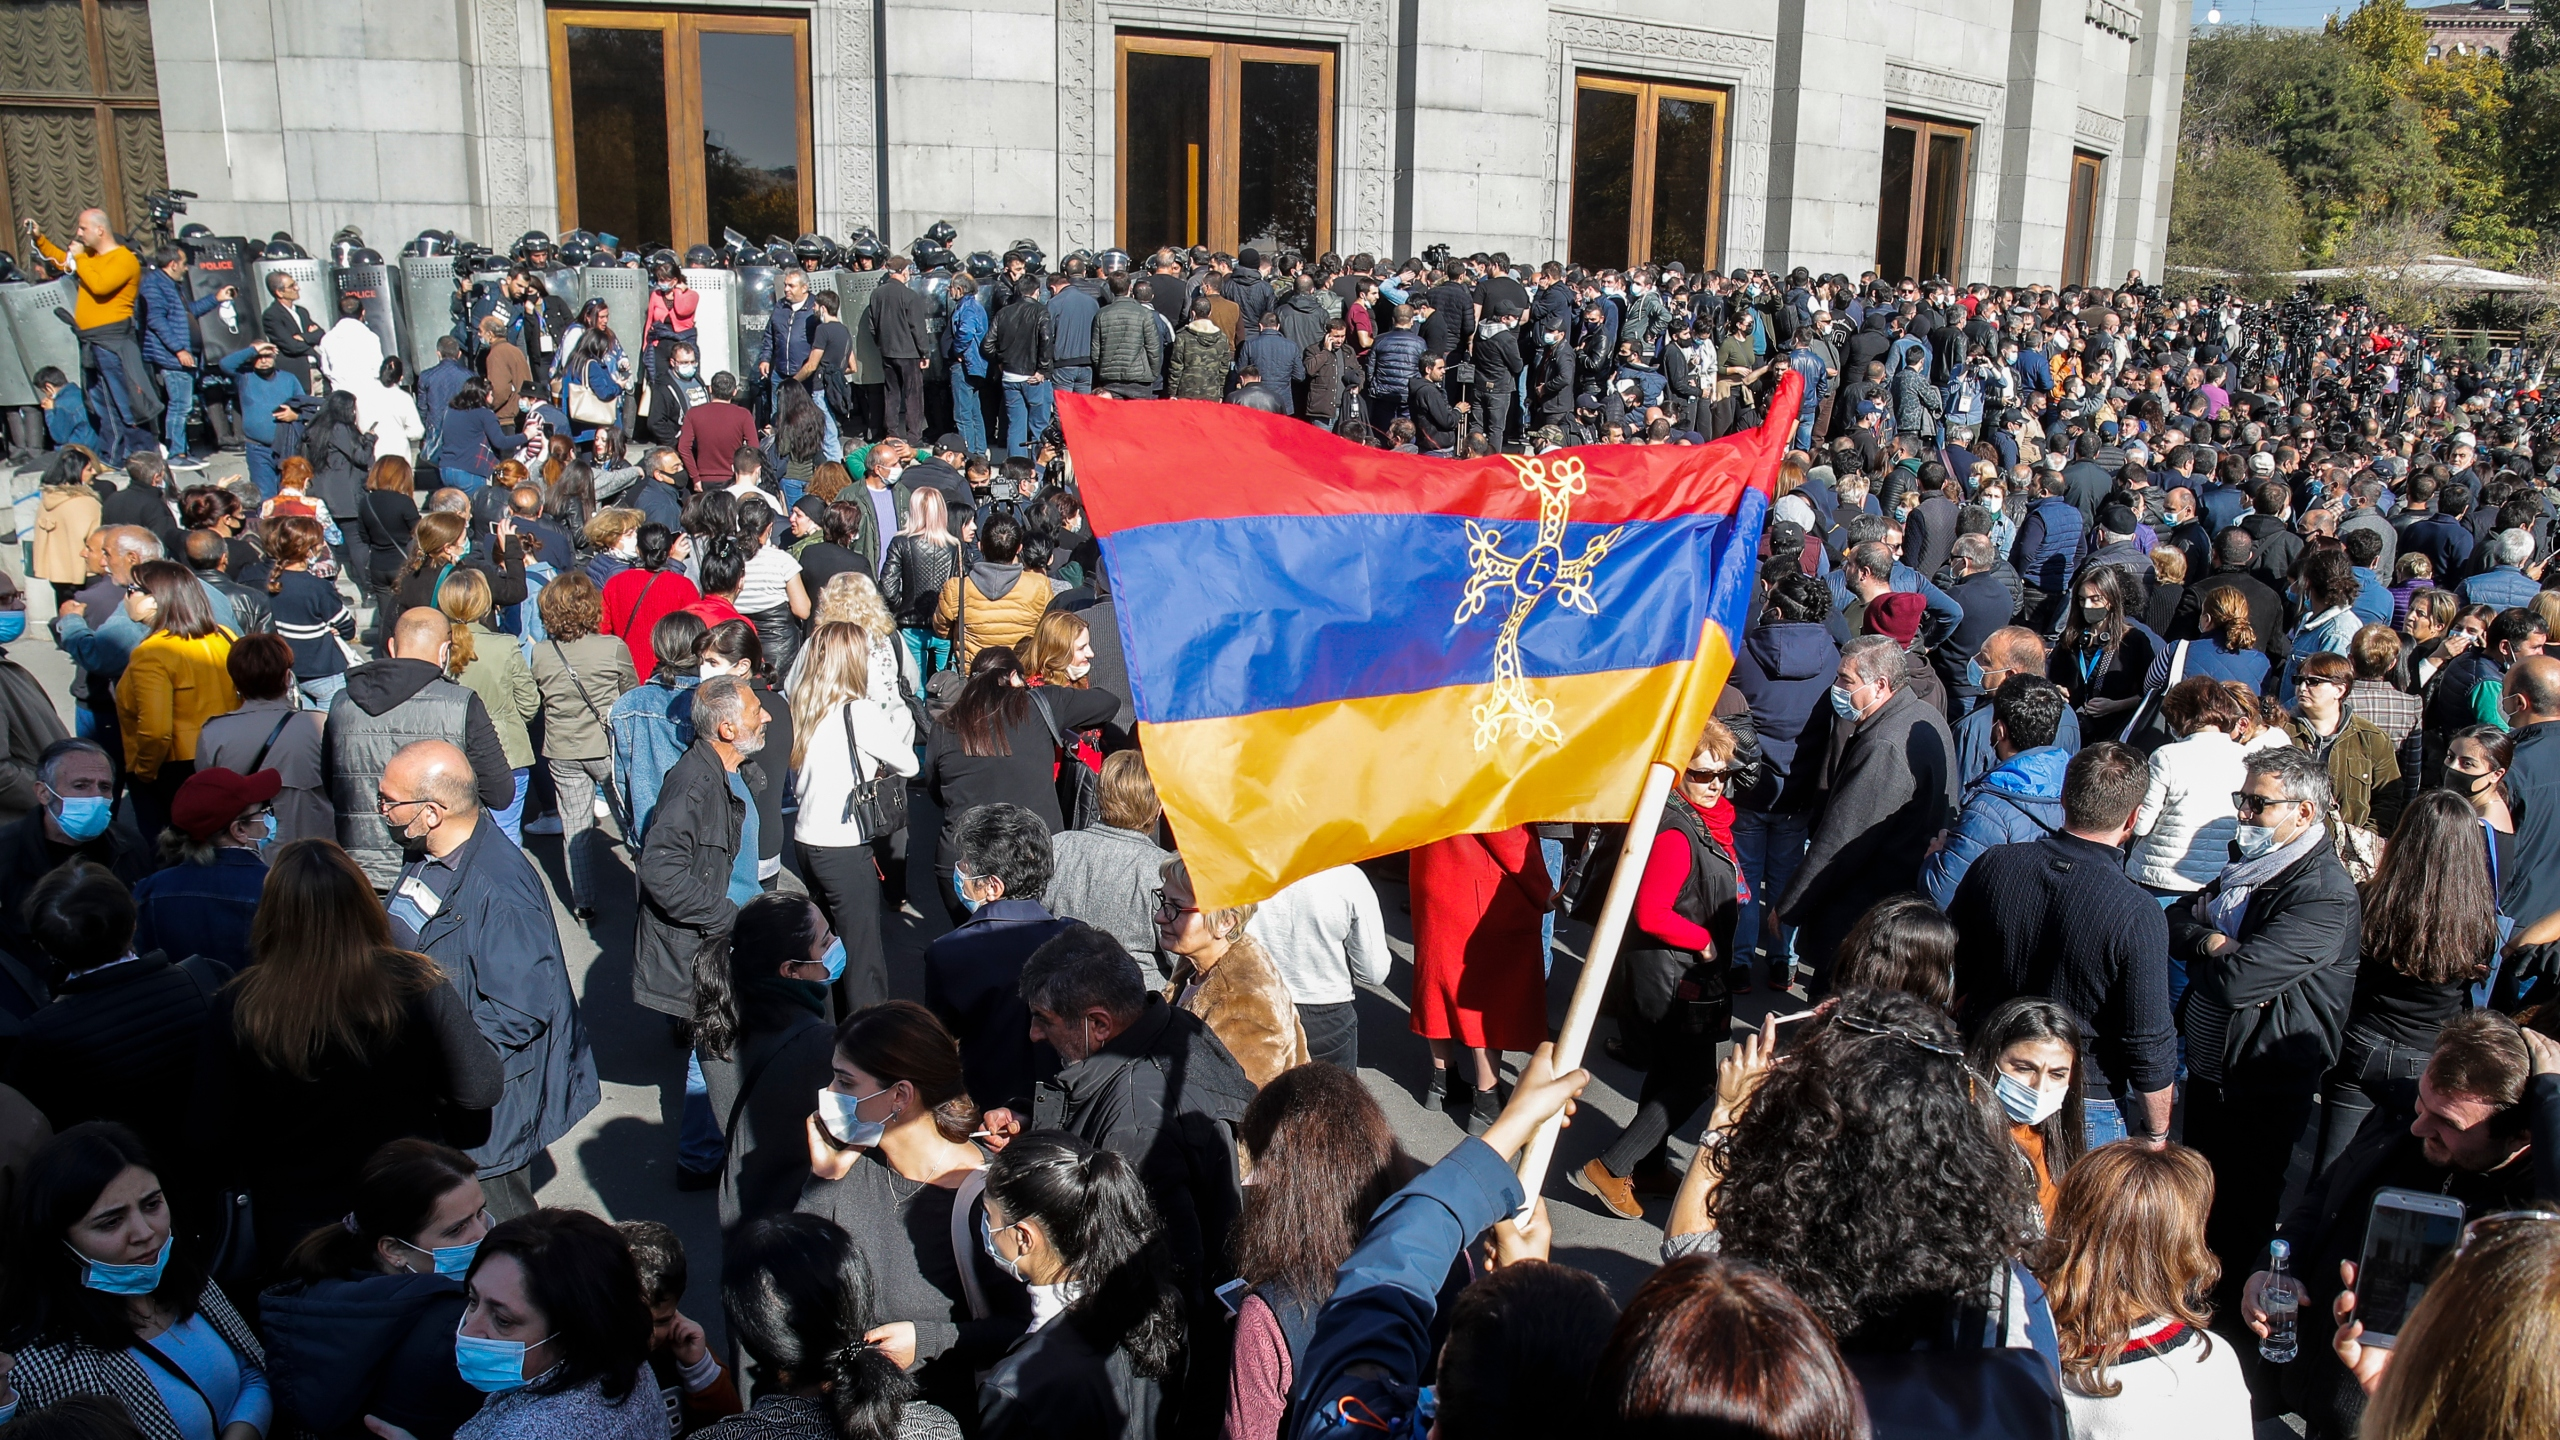 Protesters wave an Armenian national flag during a protest against an agreement to halt fighting over the Nagorno-Karabakh region, in Yerevan, Armenia, Wednesday, Nov. 11, 2020. (AP Photo/Dmitri Lovetsky)